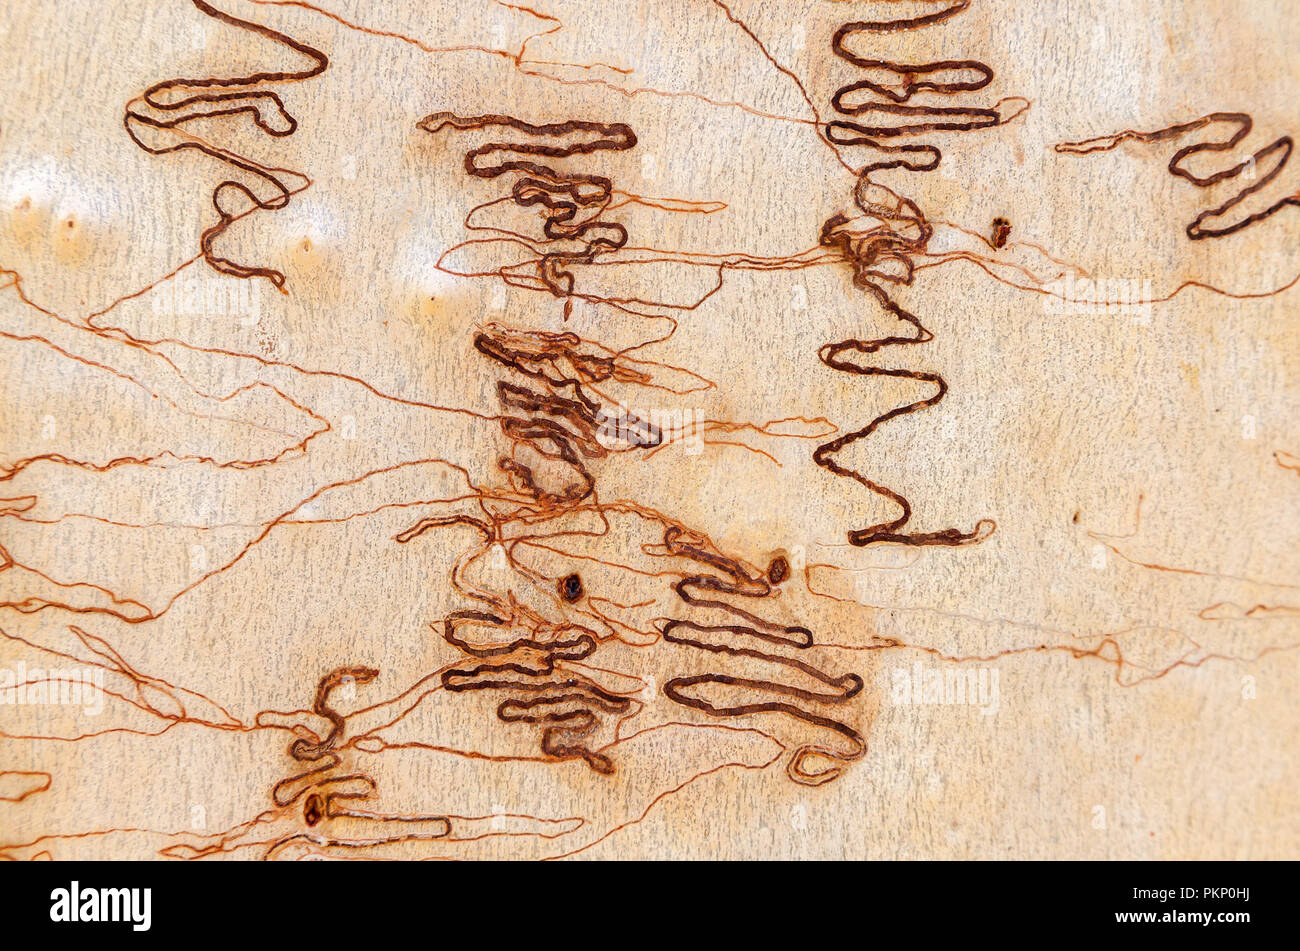 Worm track on tree bark, Australian Scribbly Gum. Royal National Park, Sydney, NSW, Australia. - Stock Image